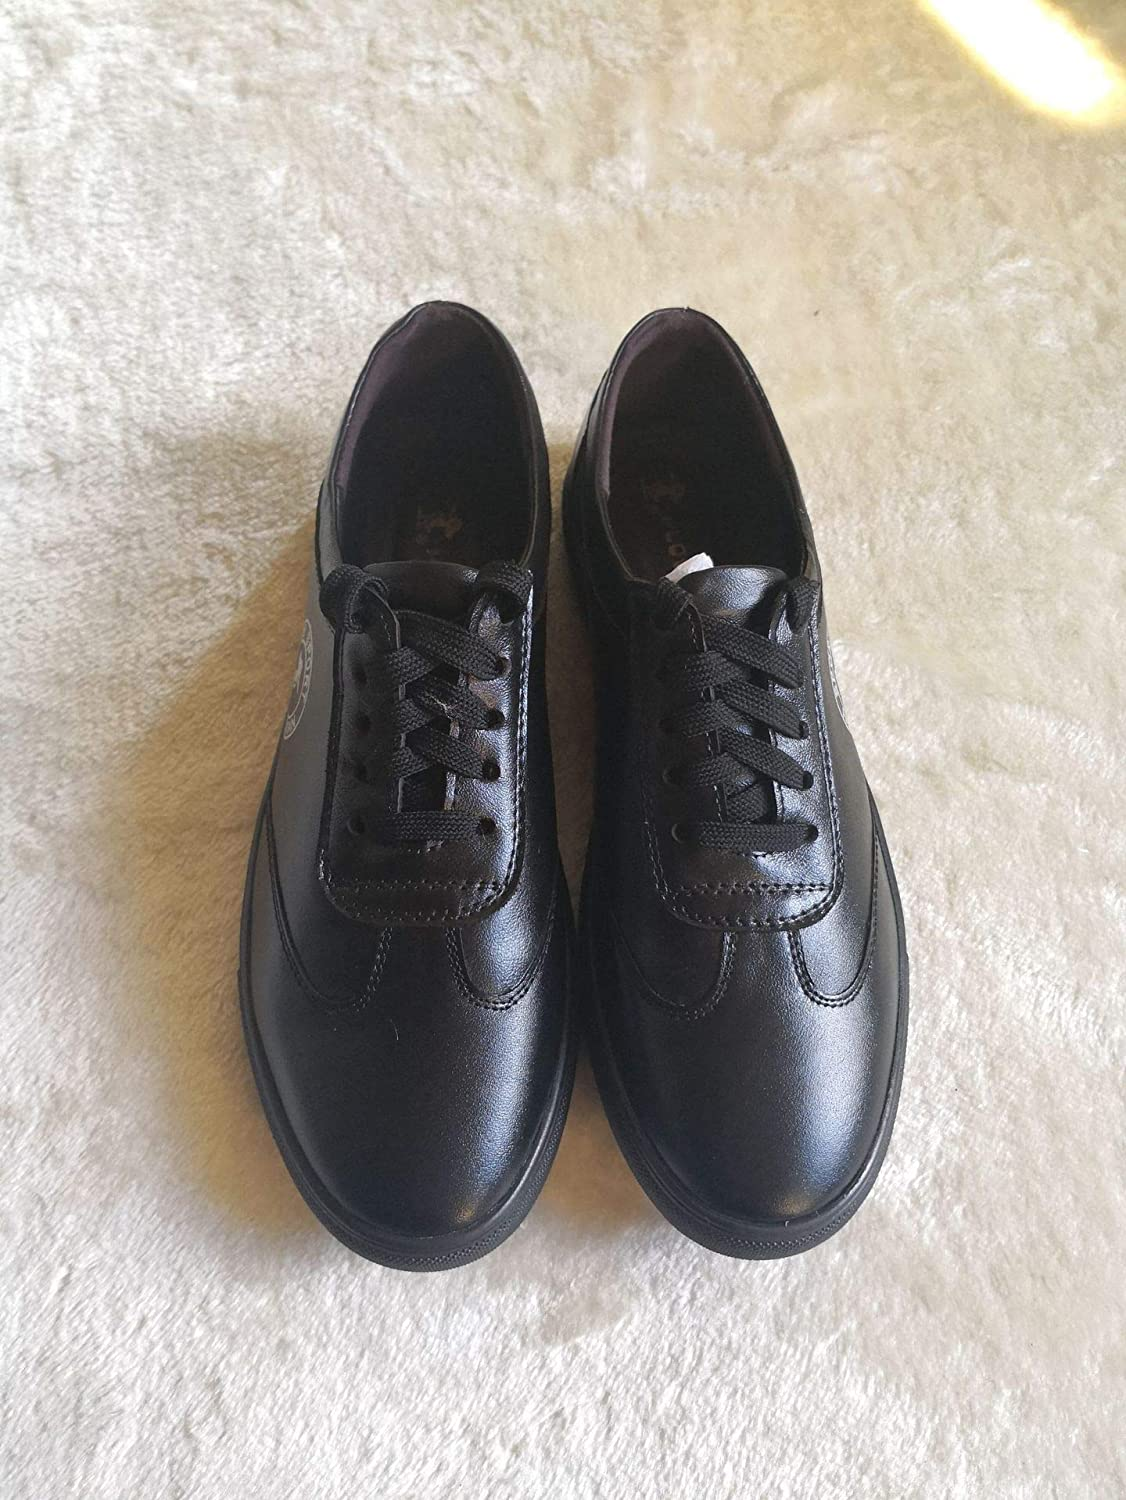 LOVDRAM Men'S Leather shoes, The Latest Style, Fashion, Breathable, Non-Slip Leather, Youth, Casual, Comfortable Leather shoes